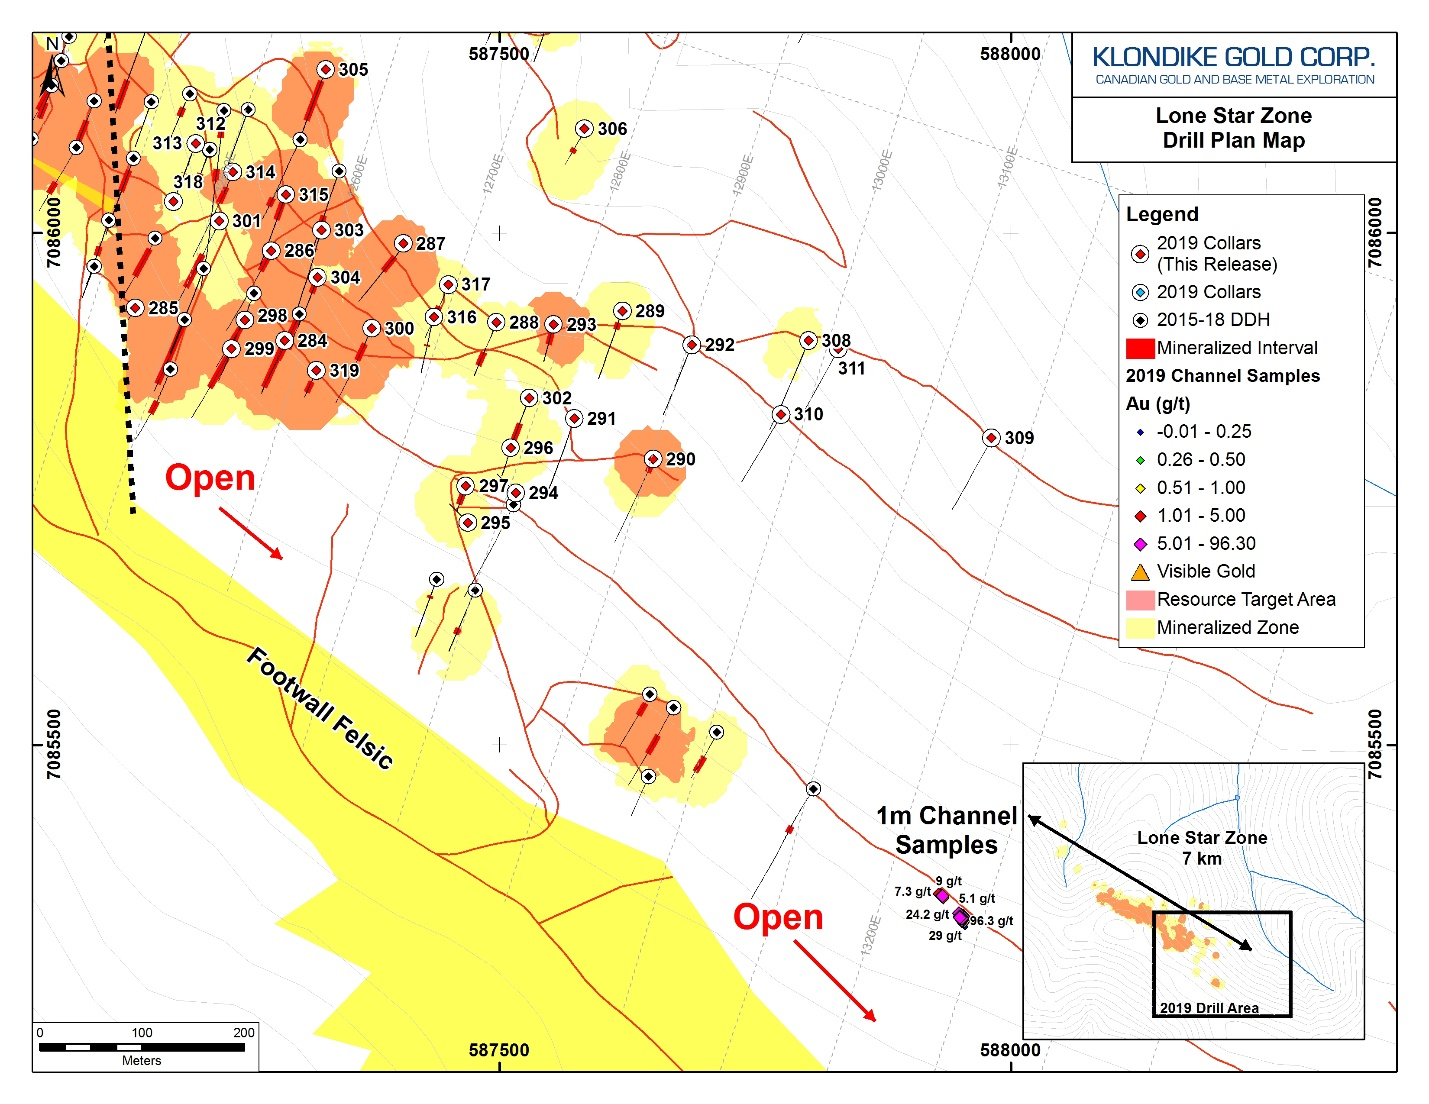 Drill Plan Map for Klondike Gold's Lone Star Zone